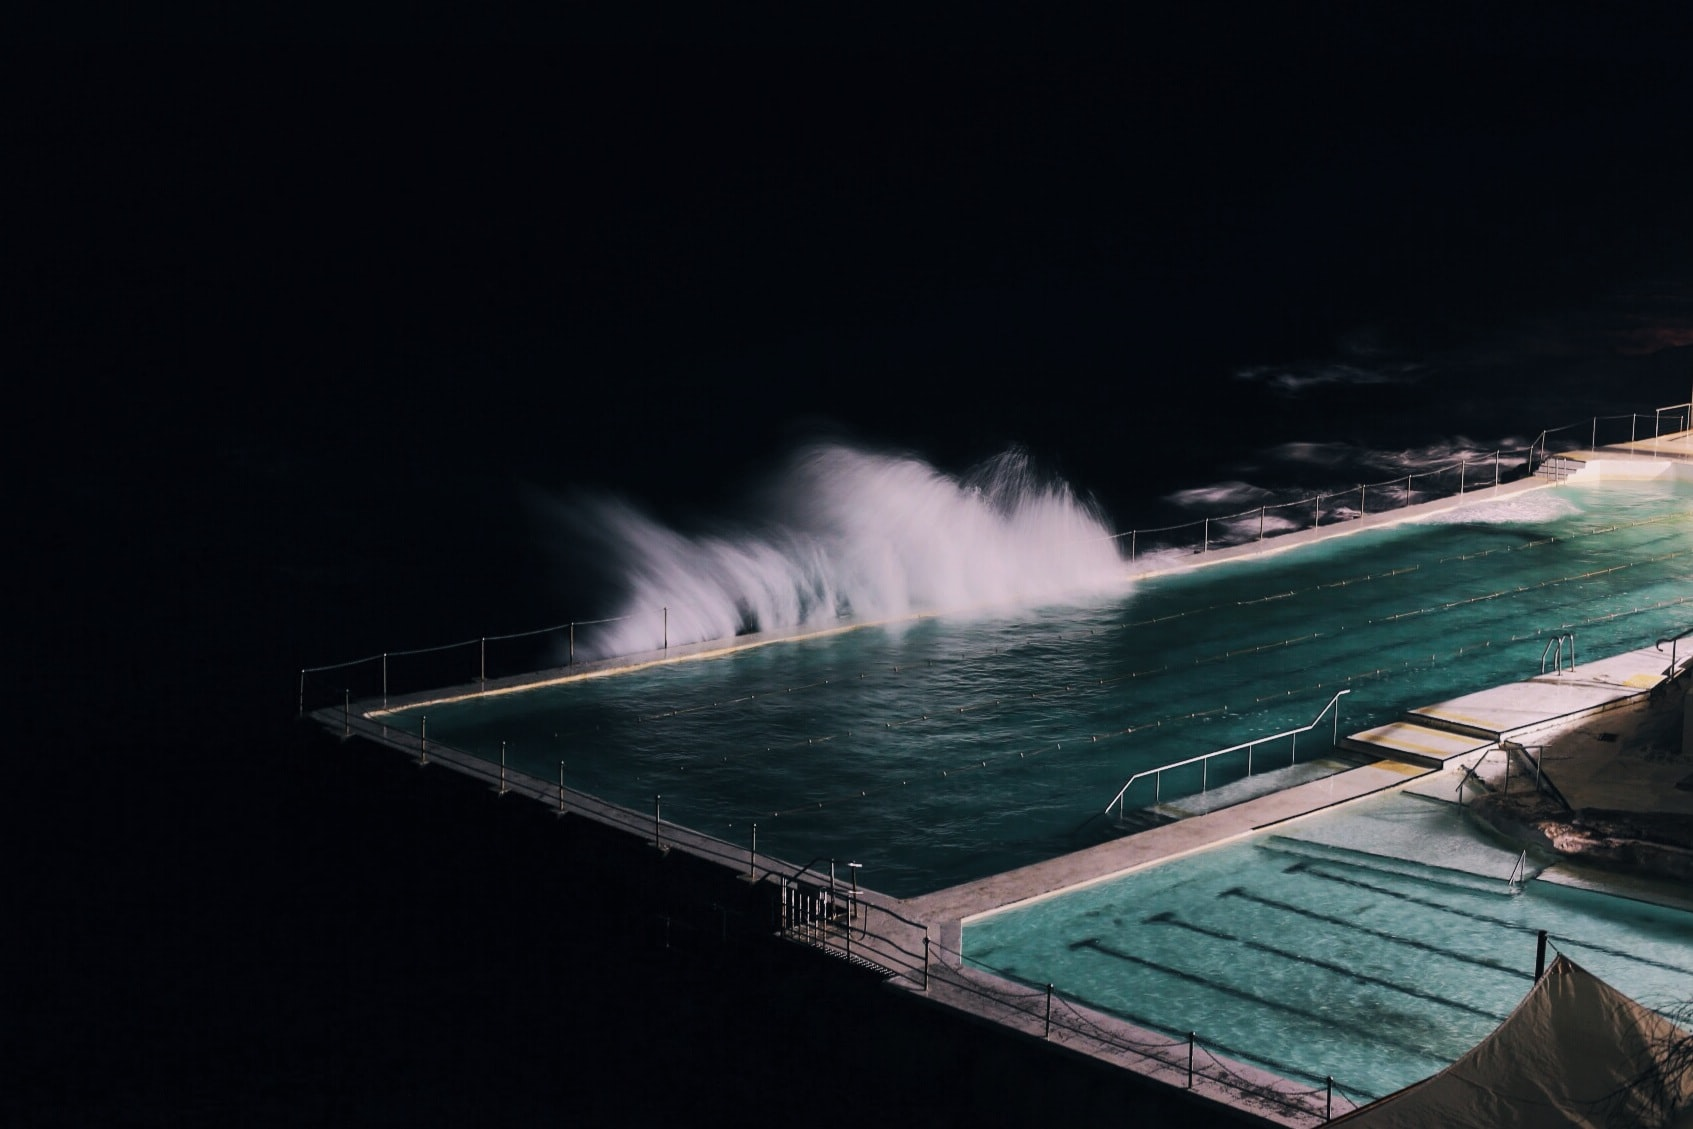 Bondi Beach at night with waves from the ocean splashing into it